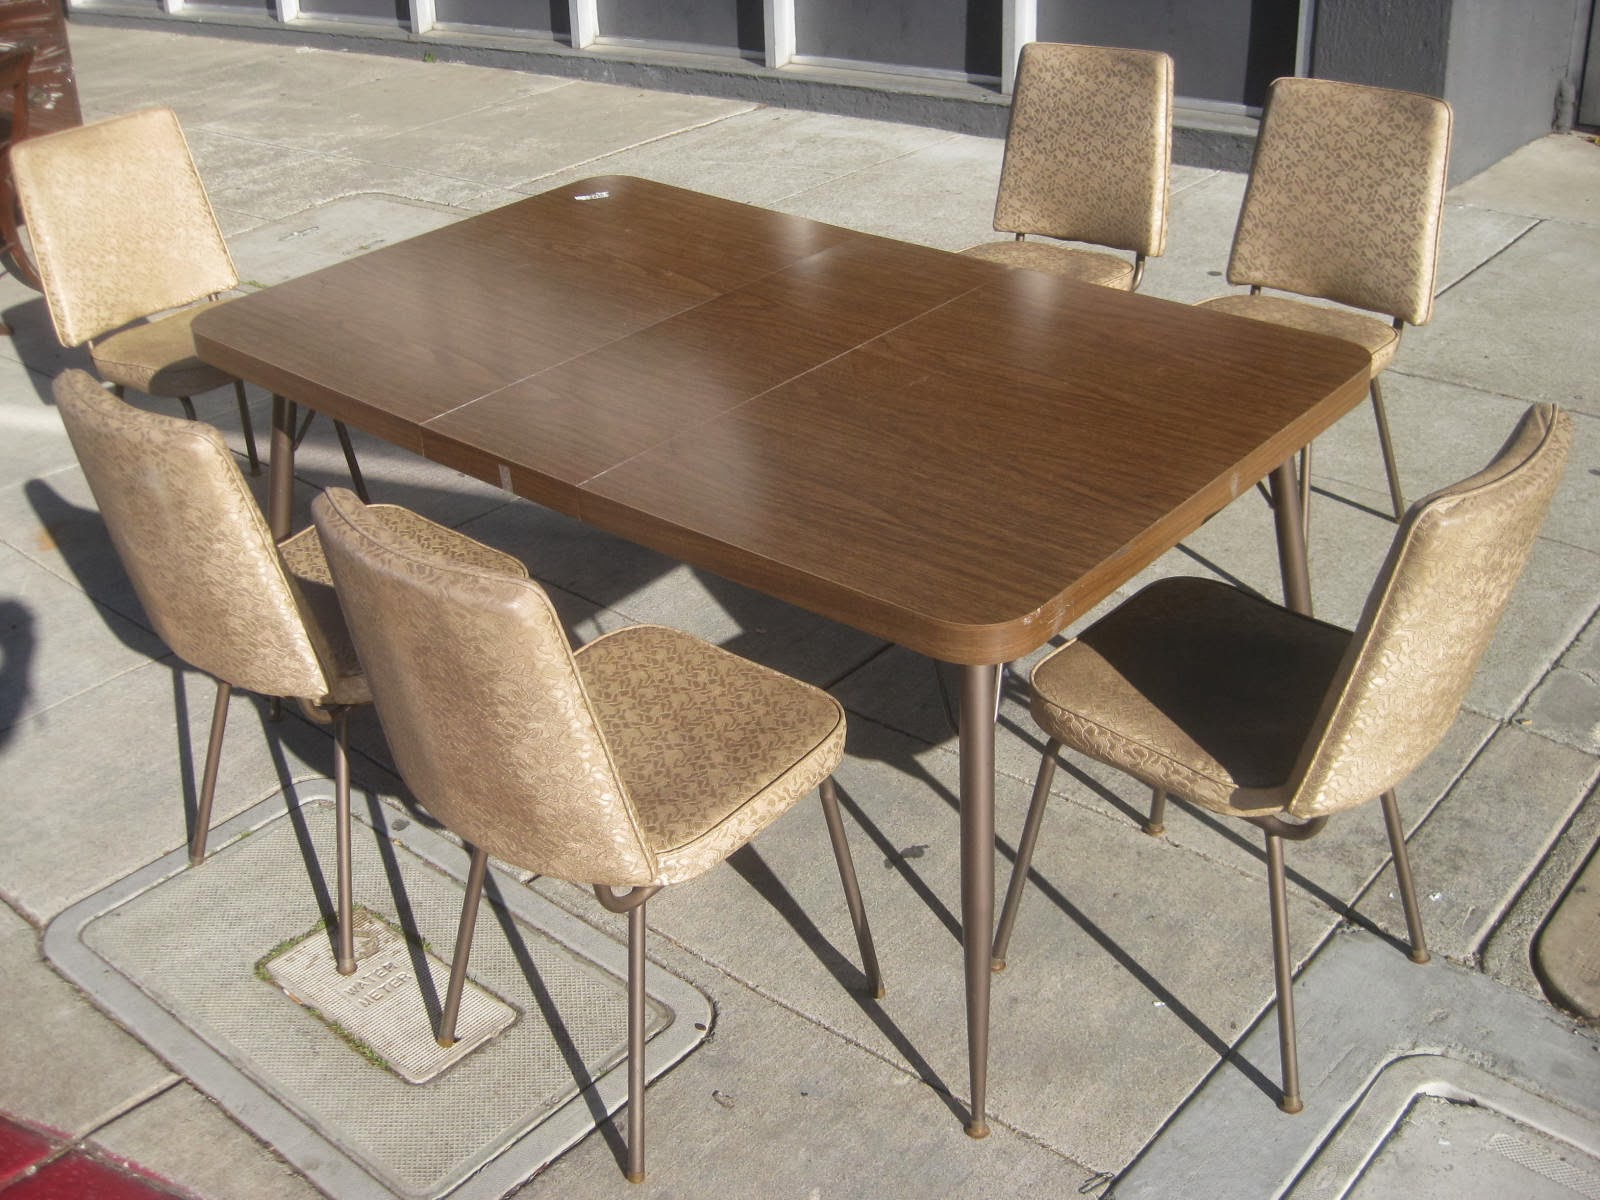 uhuru furniture collectibles sold retro 70s kitchen table